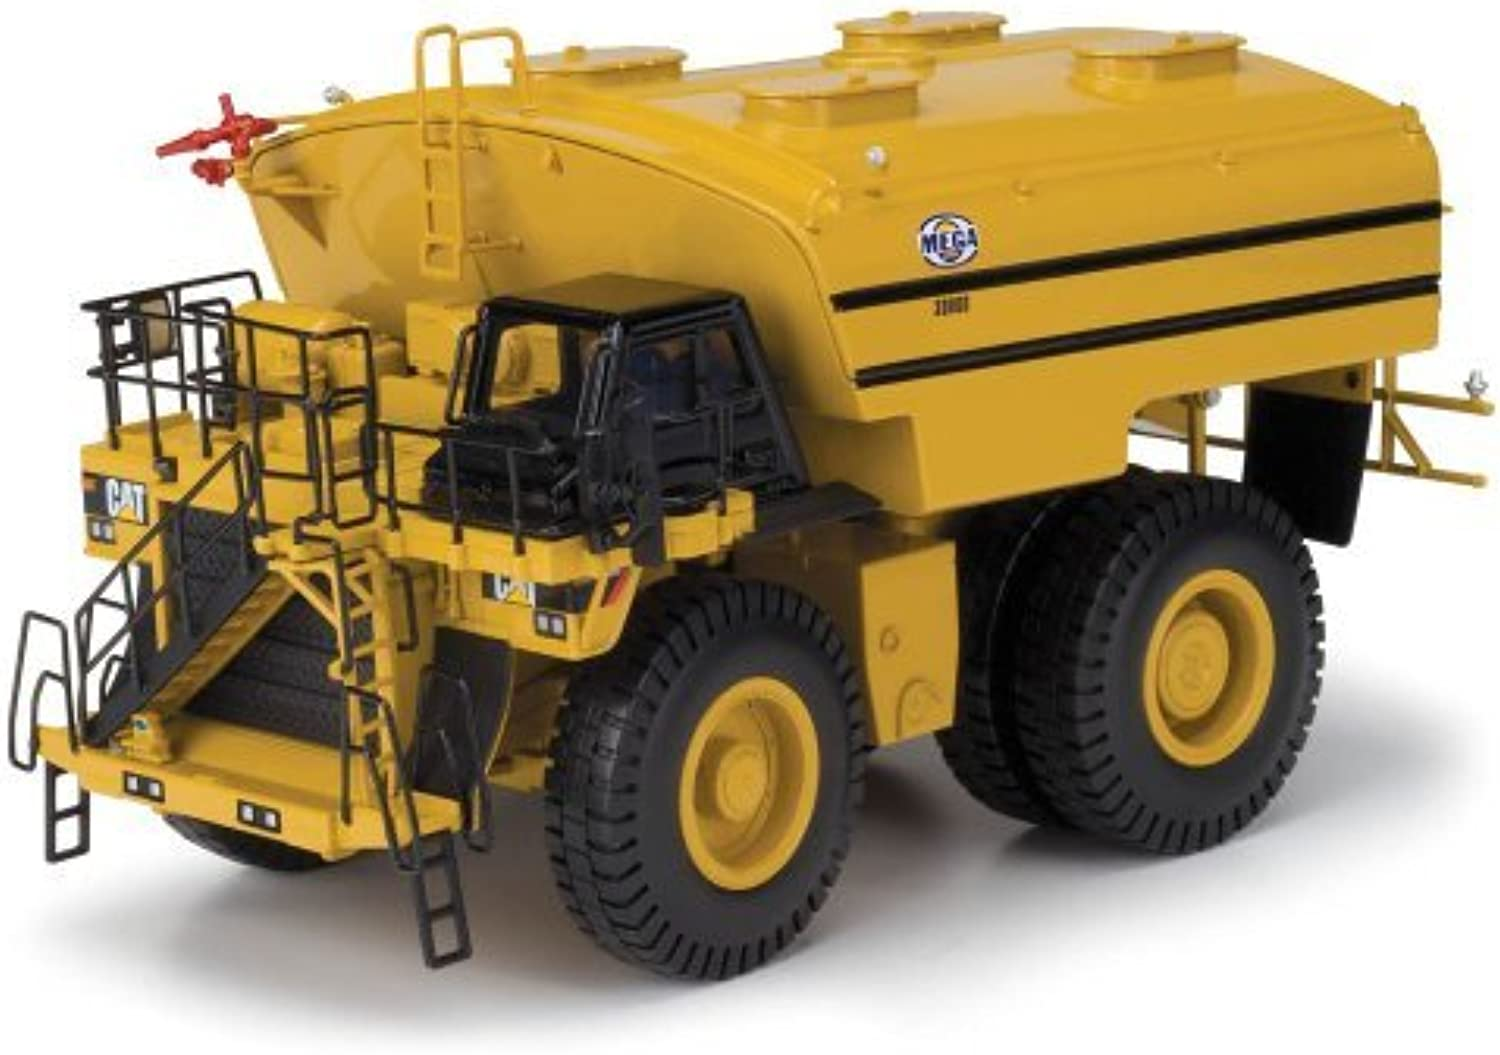 Norscot Mega MWT30 Mining Truck Water Tank Diecast Vehicle, 1 50 Scale by Norscot